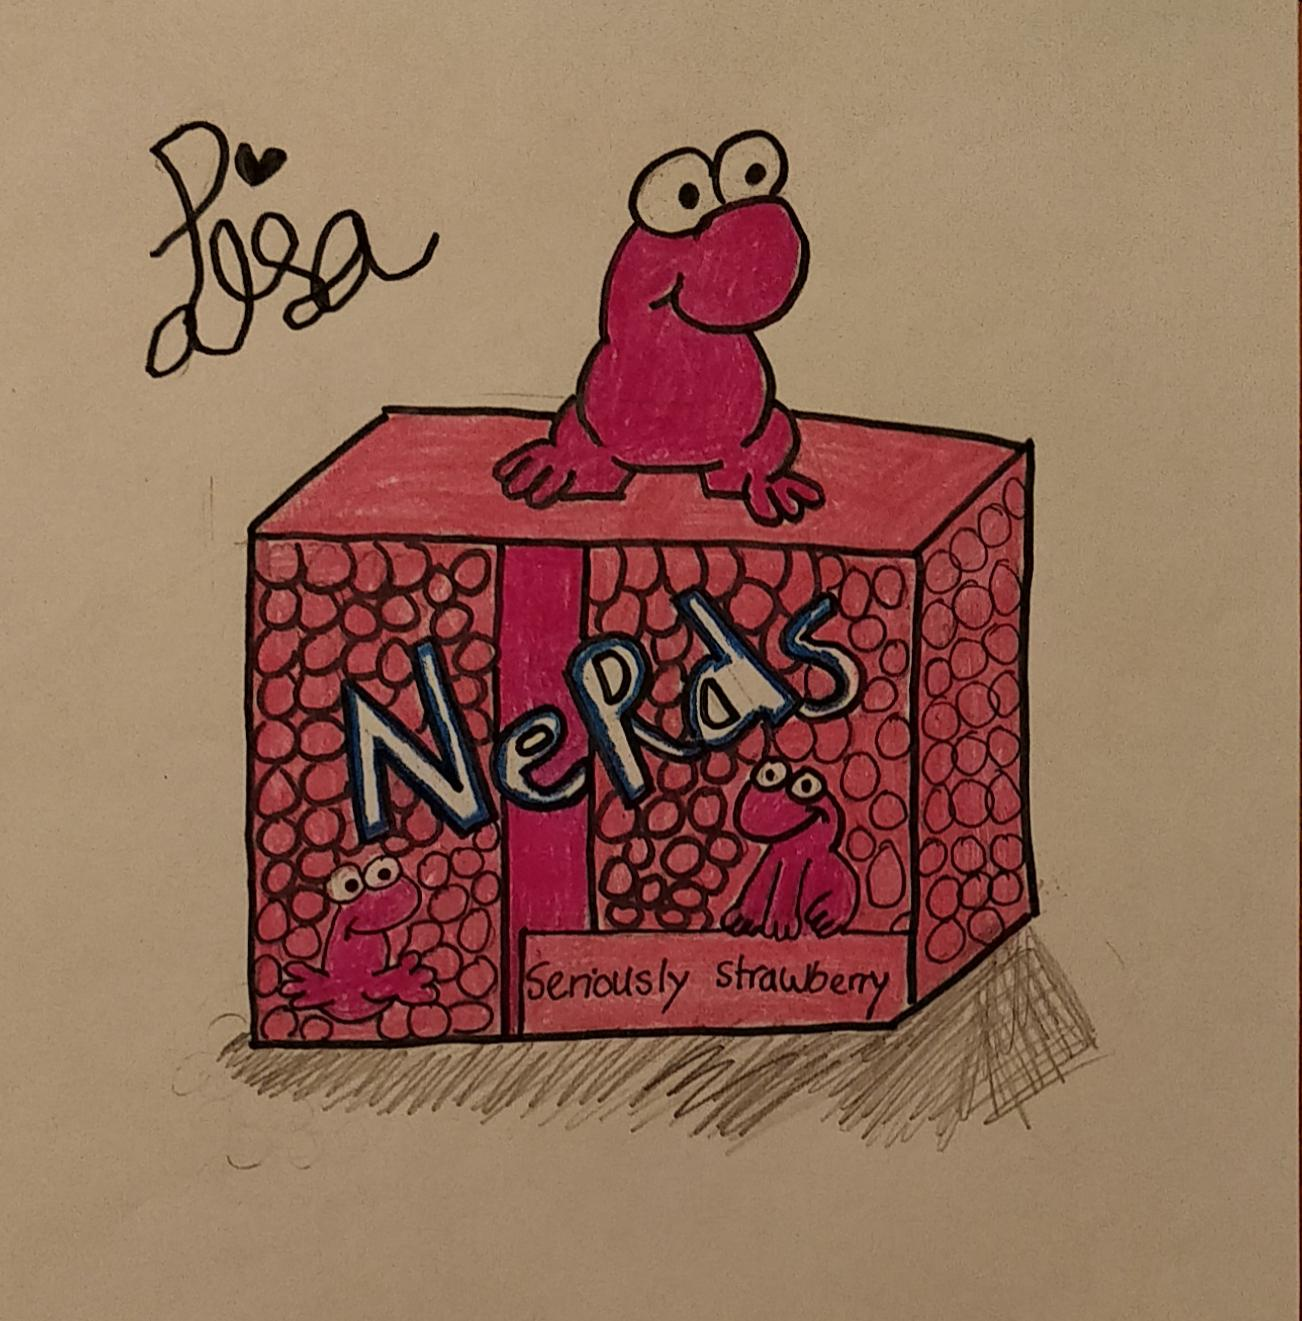 nerds box completed.jpg